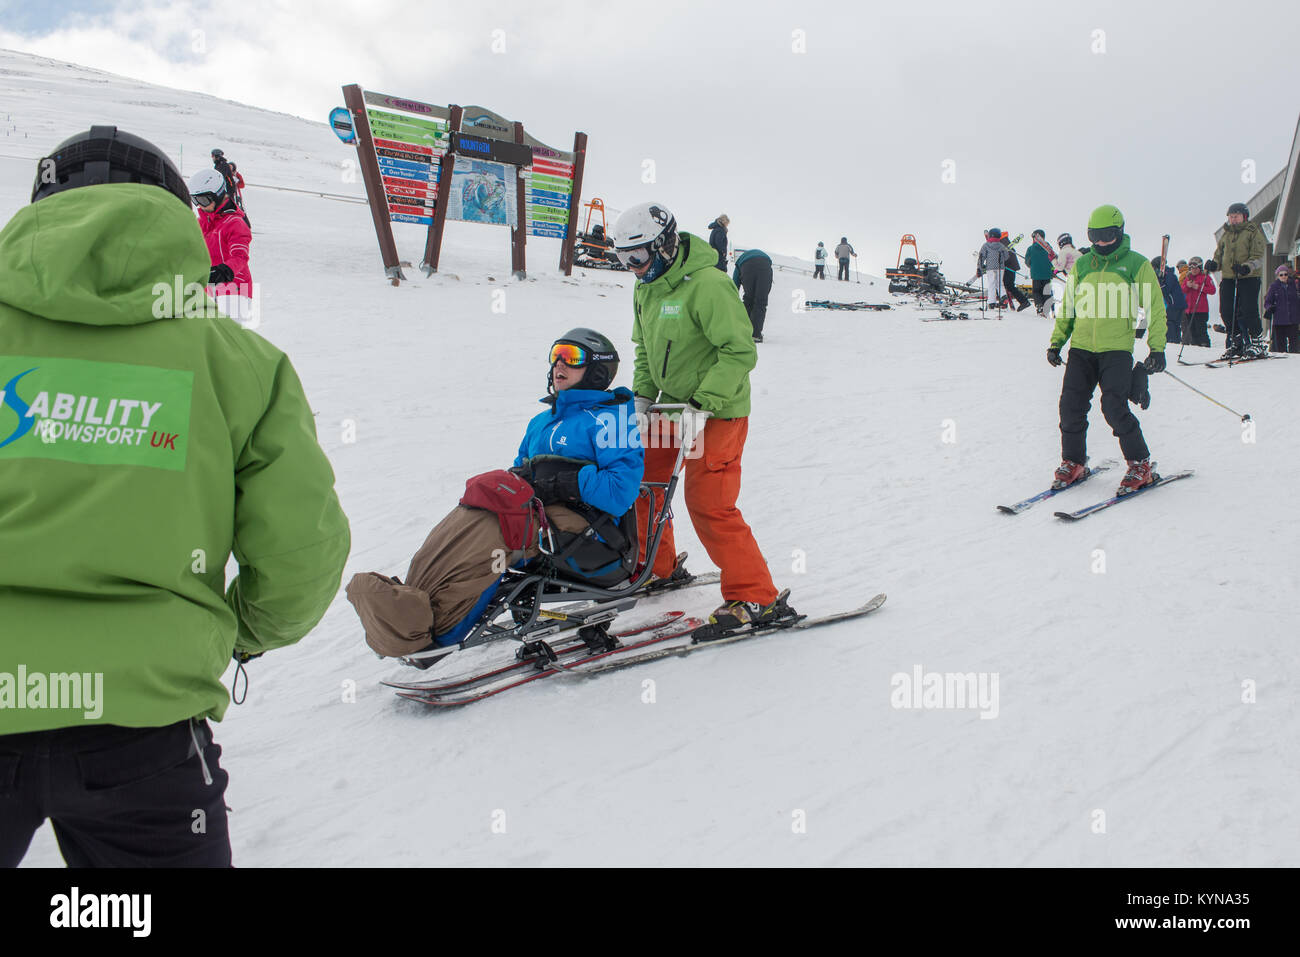 Disability nowsport taking disabled person skiing on the summit of cairngorm mountain. Scotland - Stock Image